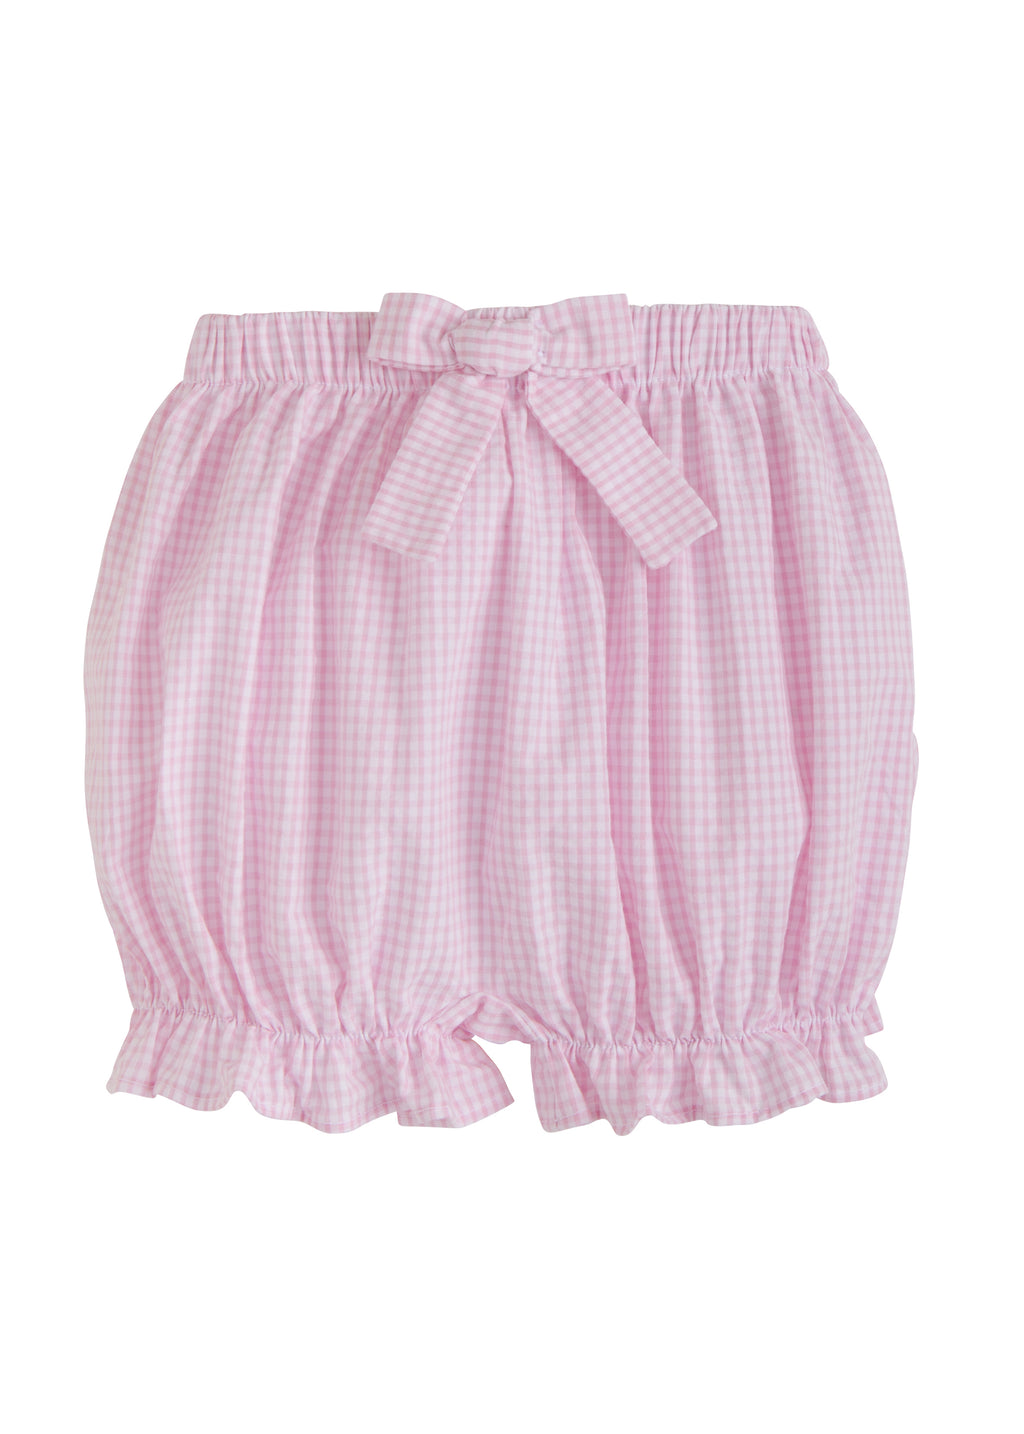 Bow Bloomers - Pink Gingham - Born Childrens Boutique